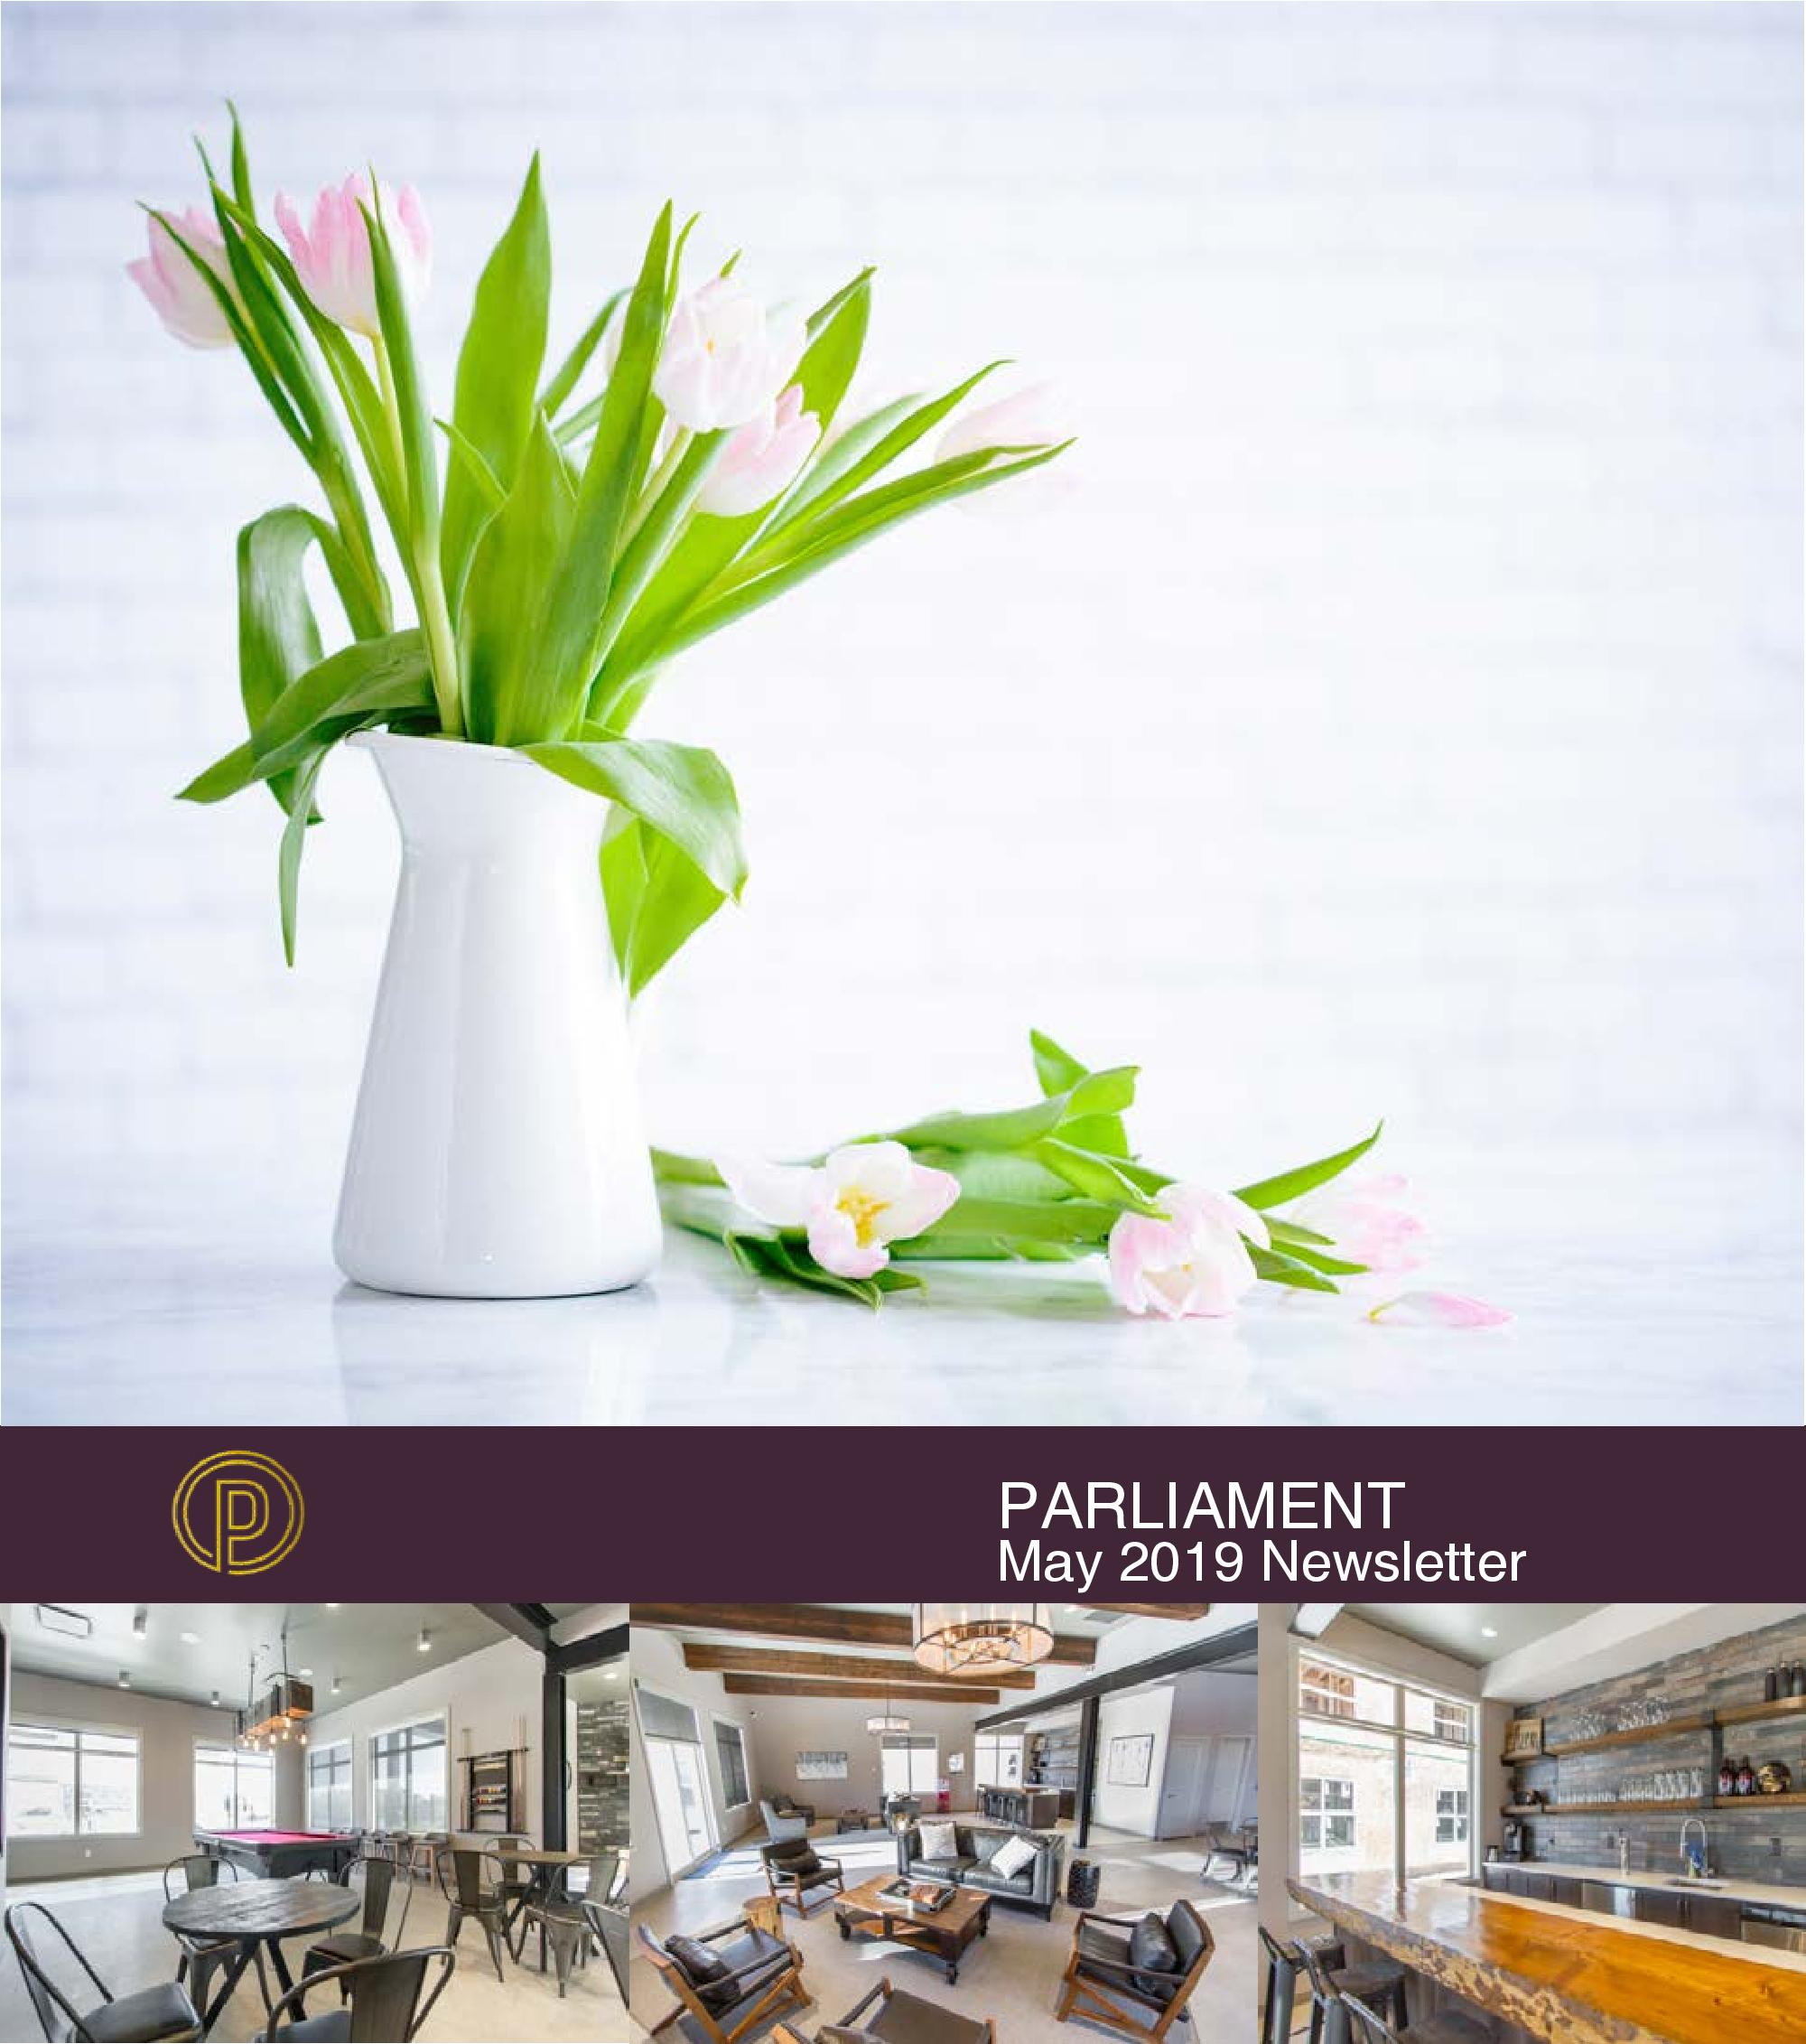 Parliament Newsletter May 2019_MAY-page-001.jpg